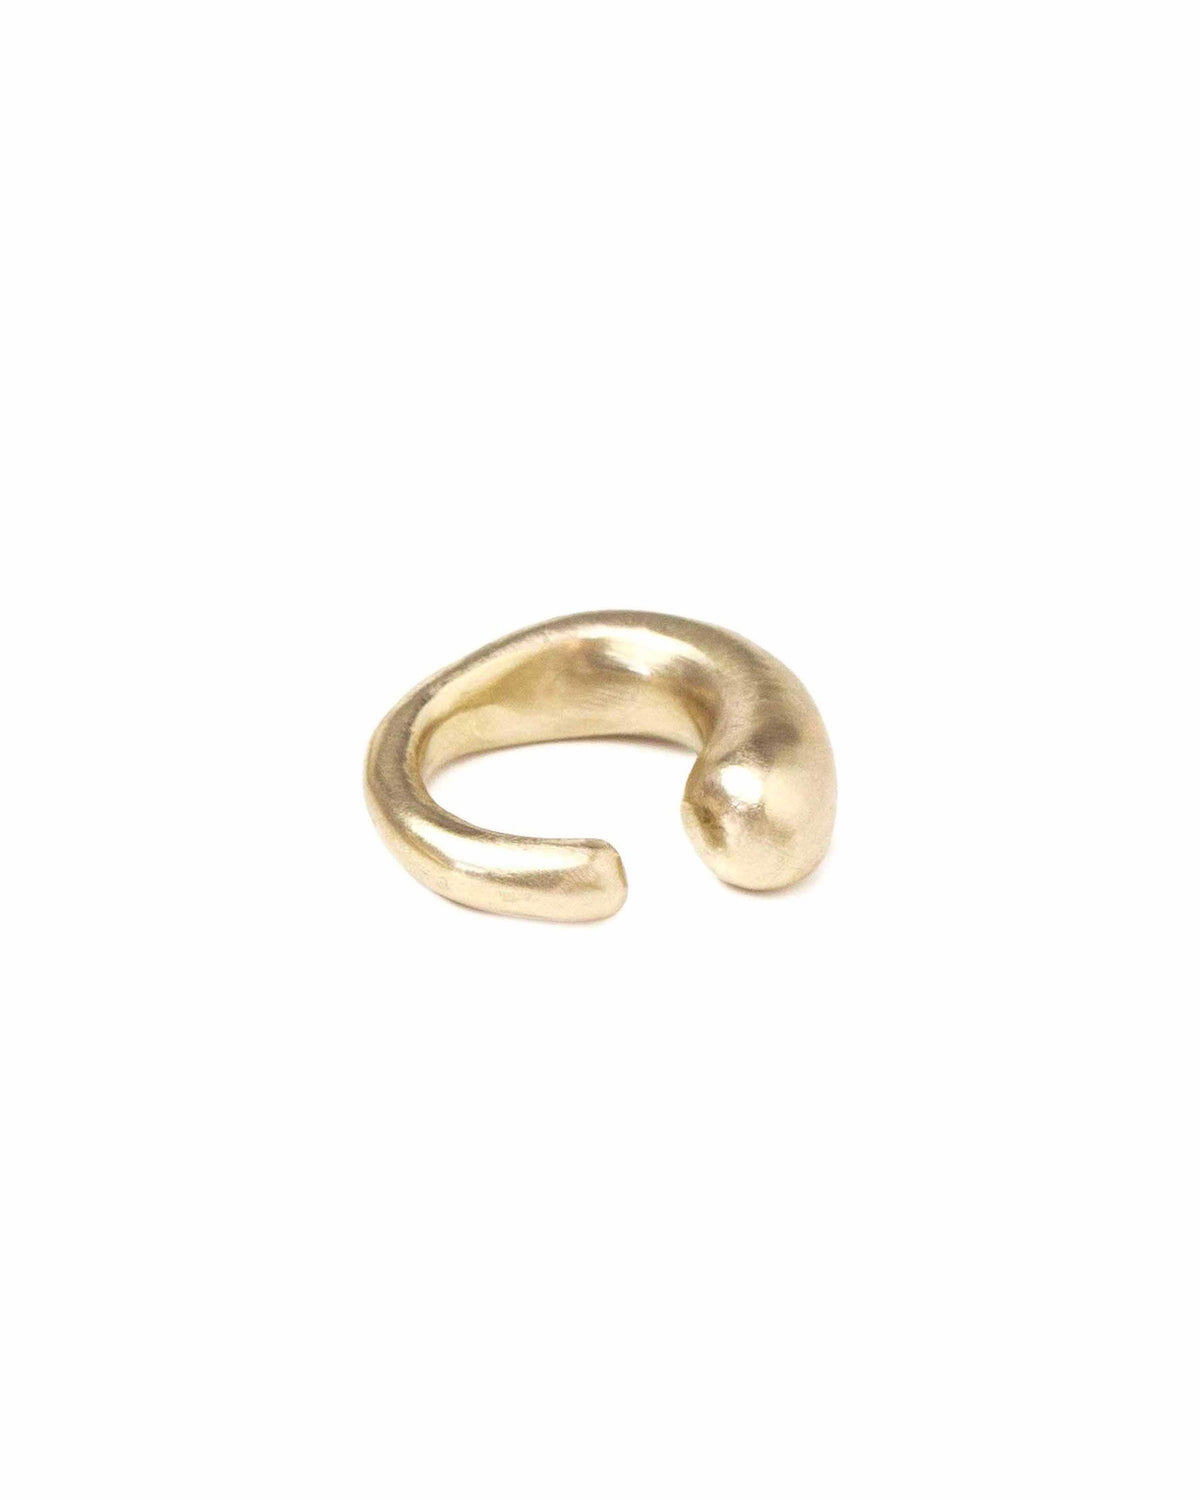 THICK ROUNDED RING IV